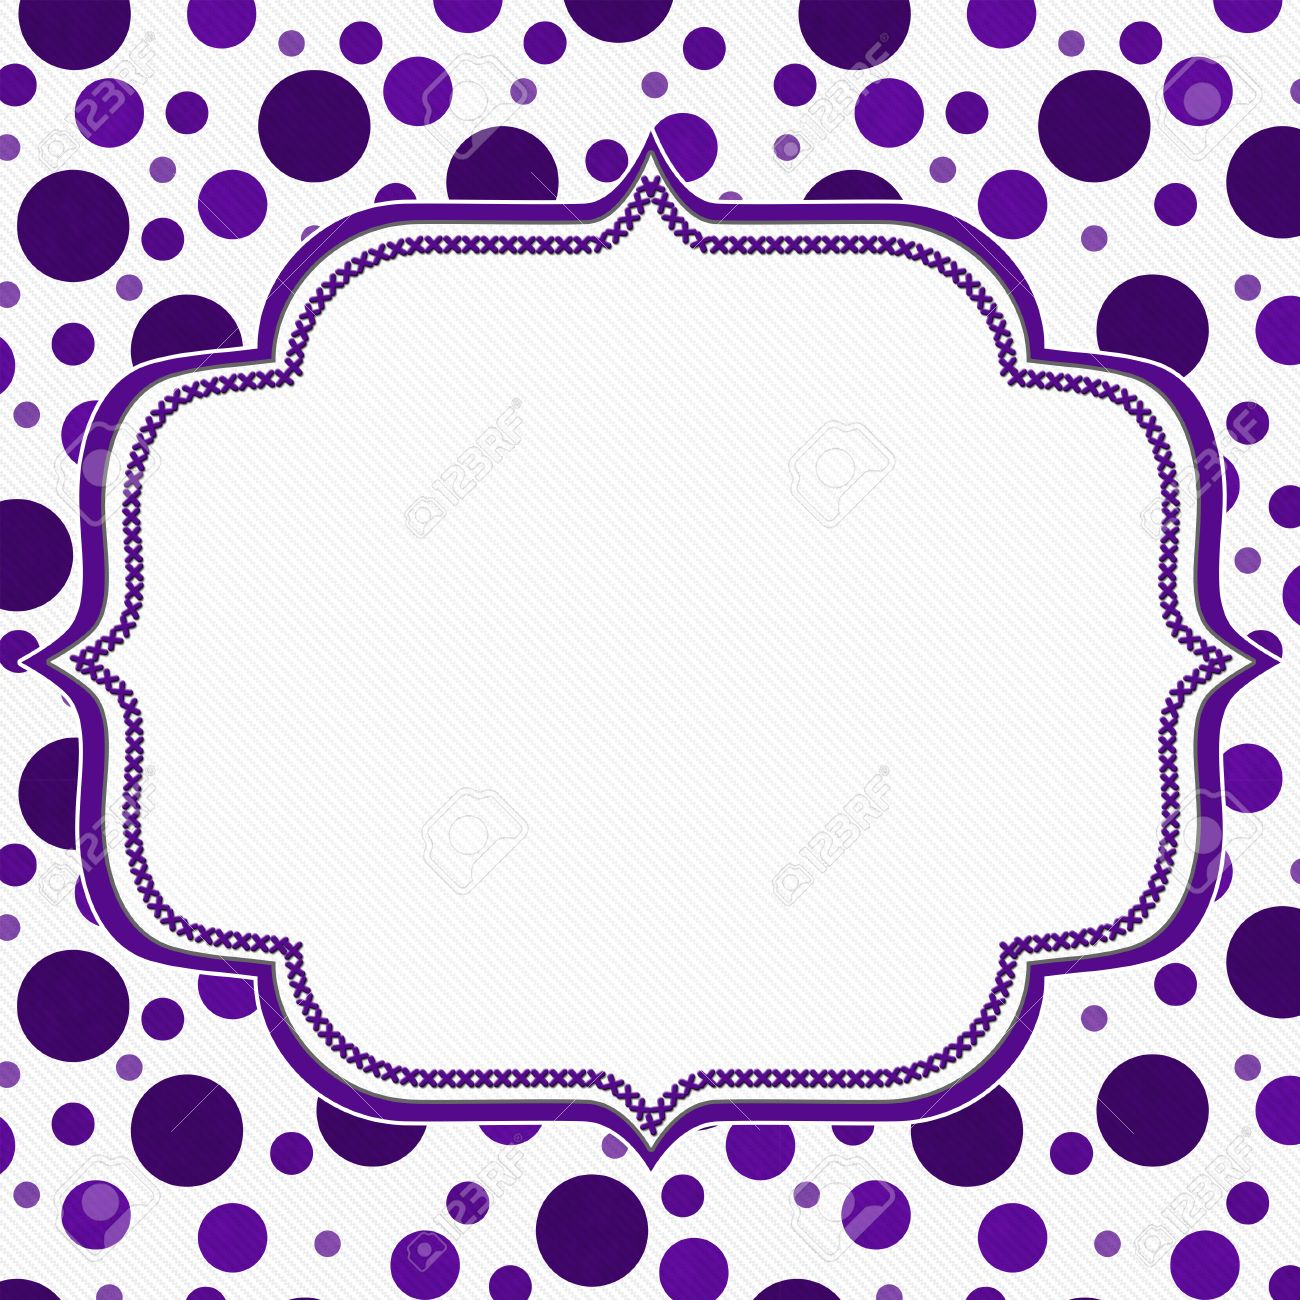 Purple And White Polka Dot Frame With Embroidery Stitches Background ...